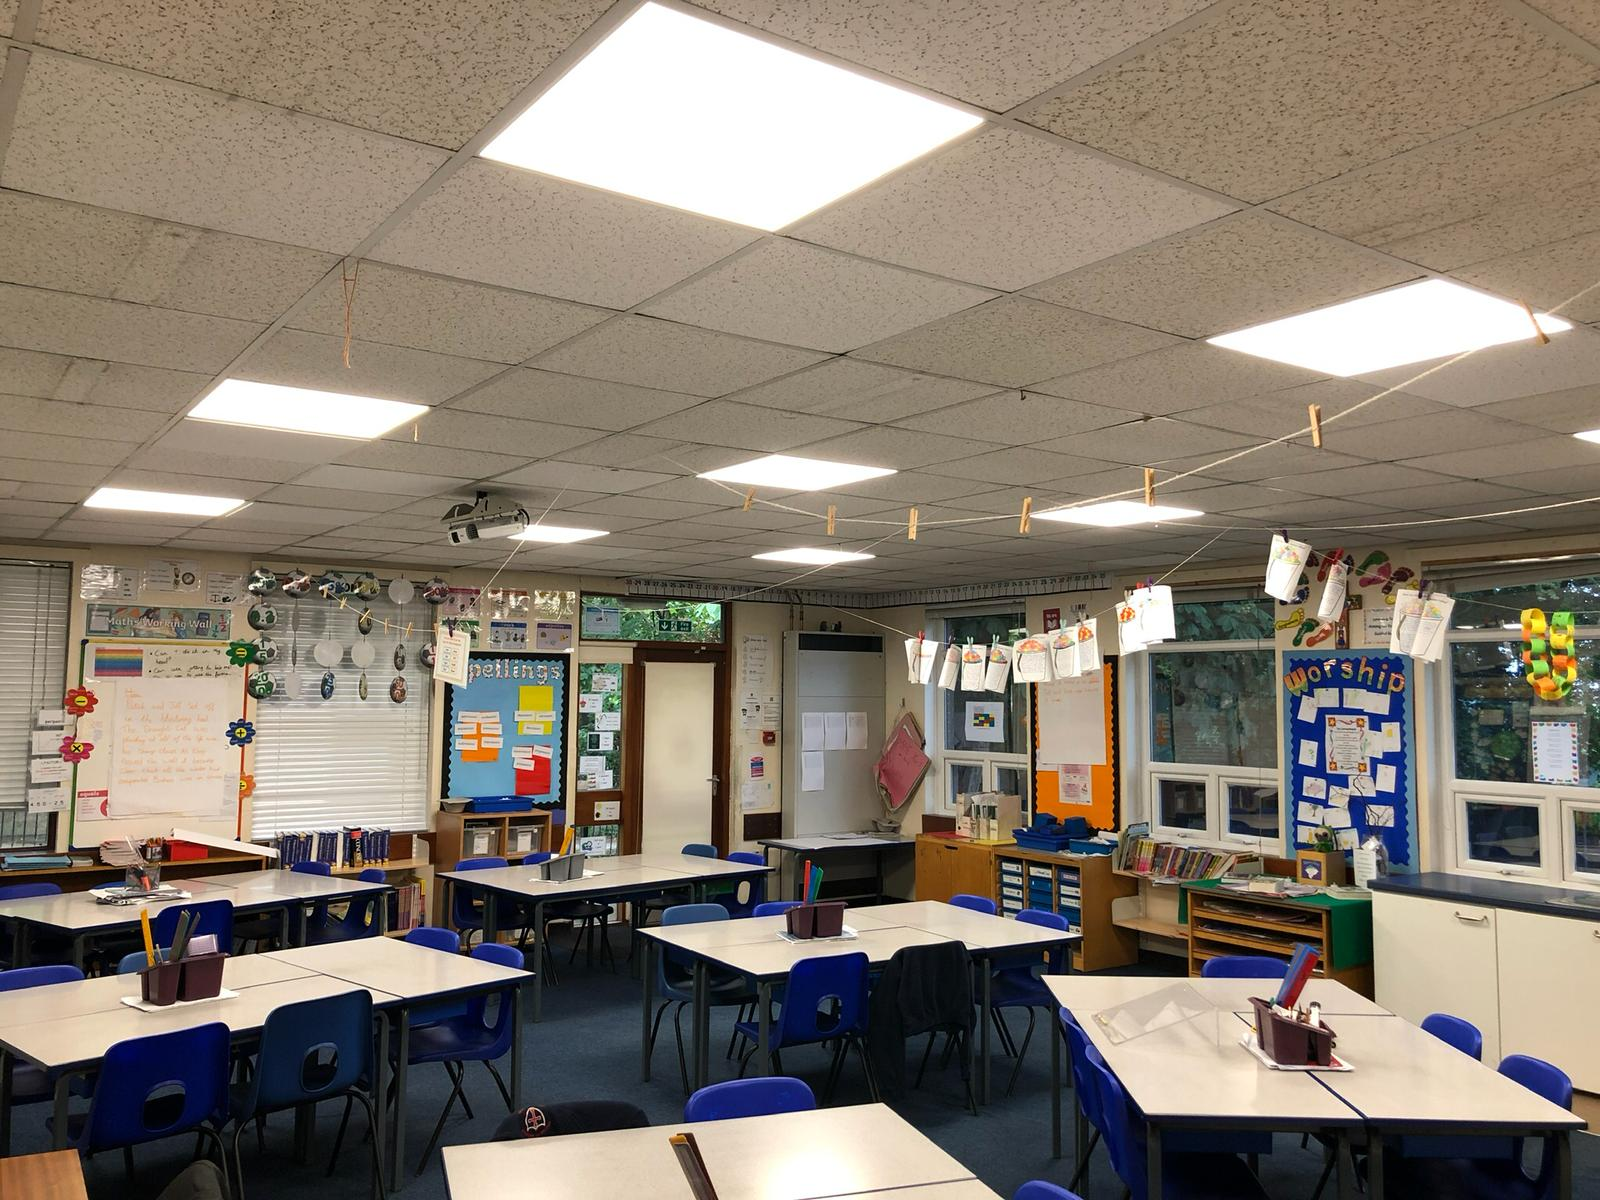 LED Lighting in a School